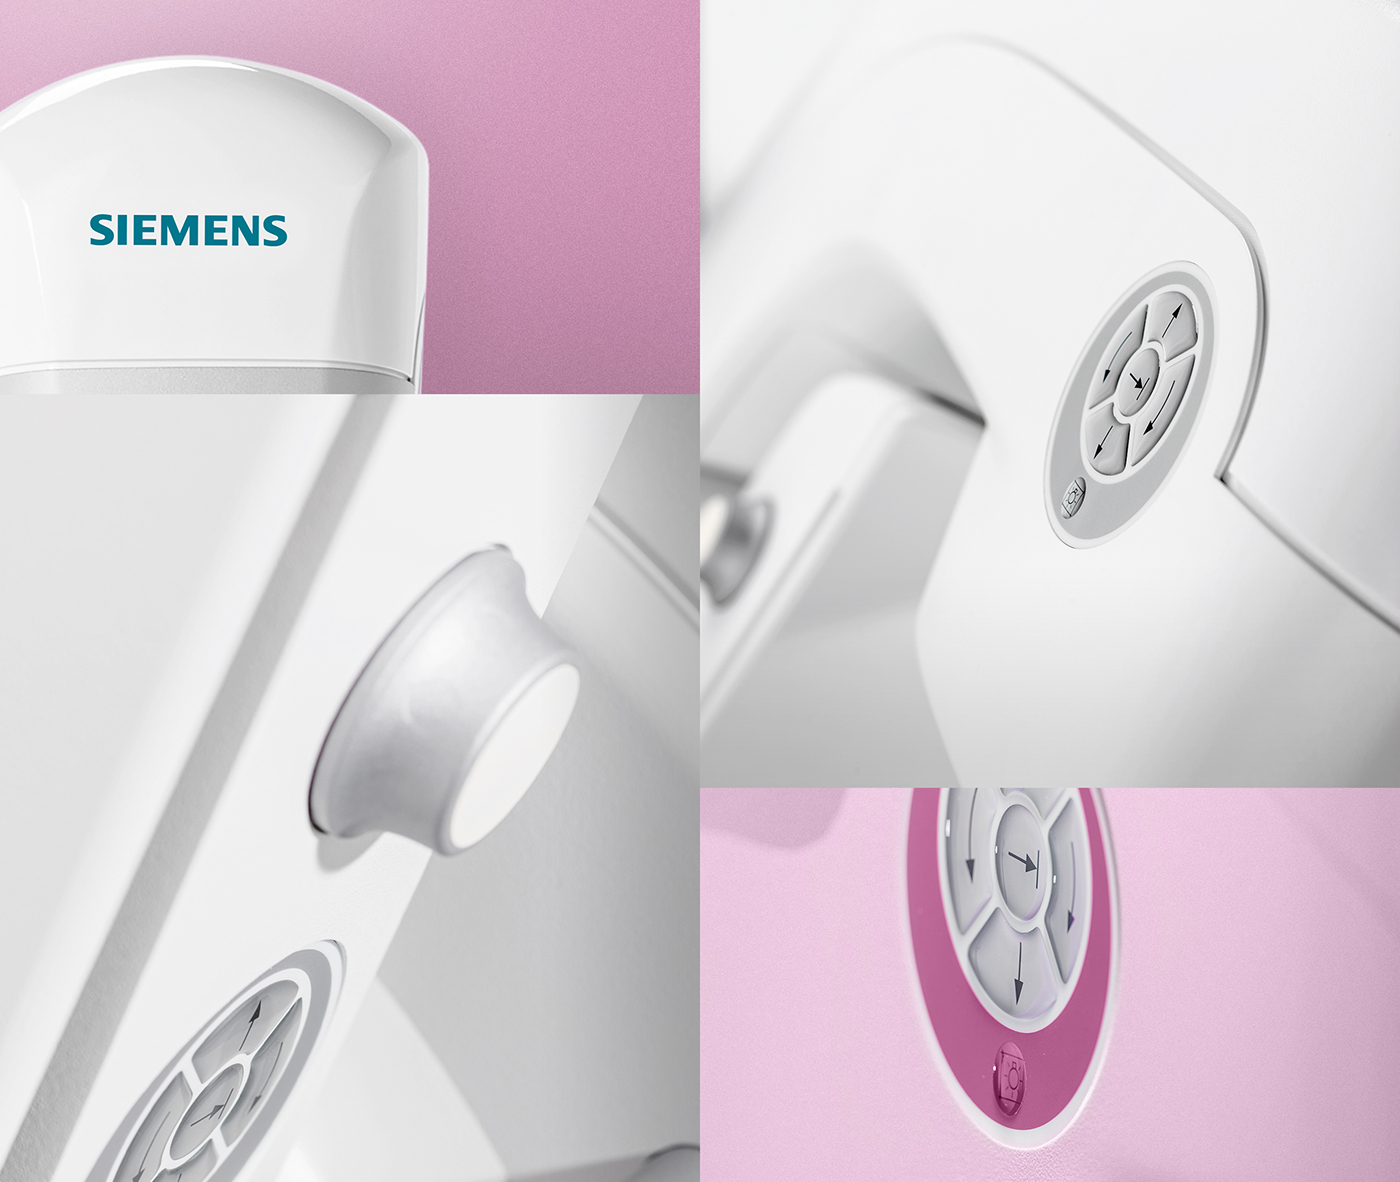 medical Women's health mammography cancer preventive care Siemens healthcare woman x-ray scanner human centered